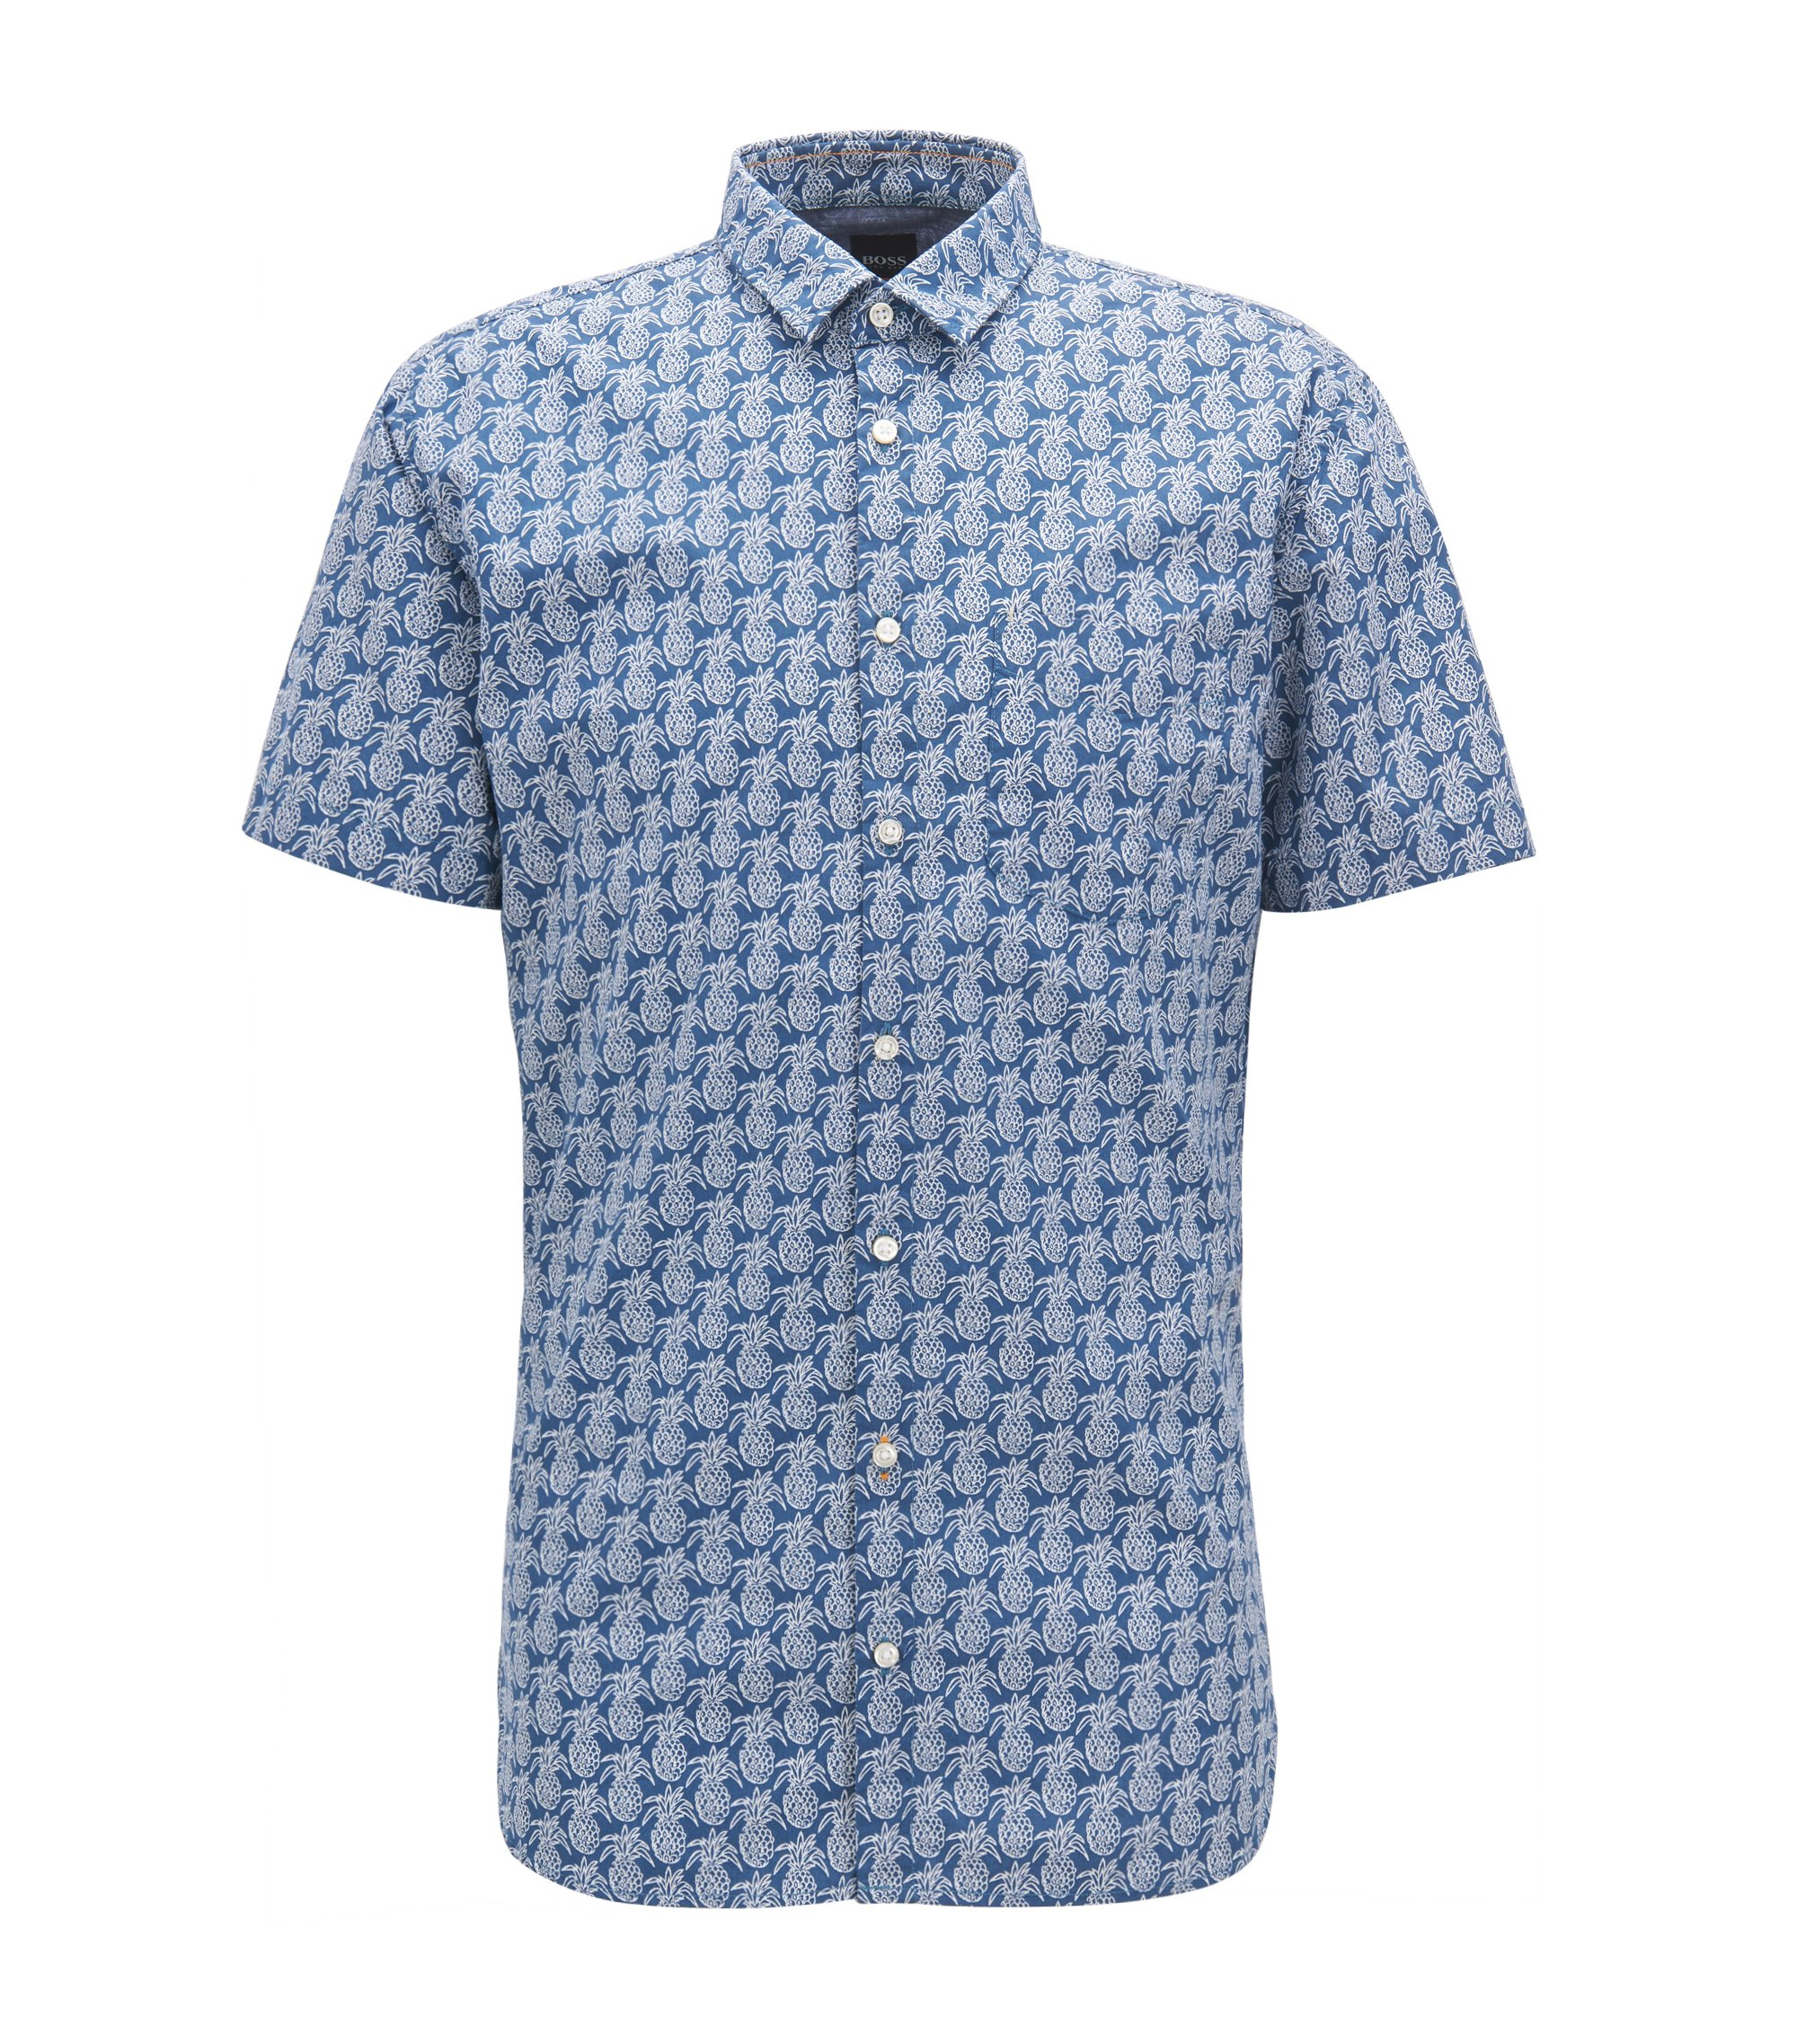 Pineapple-print cotton shirt in a slim fit, Dark Blue